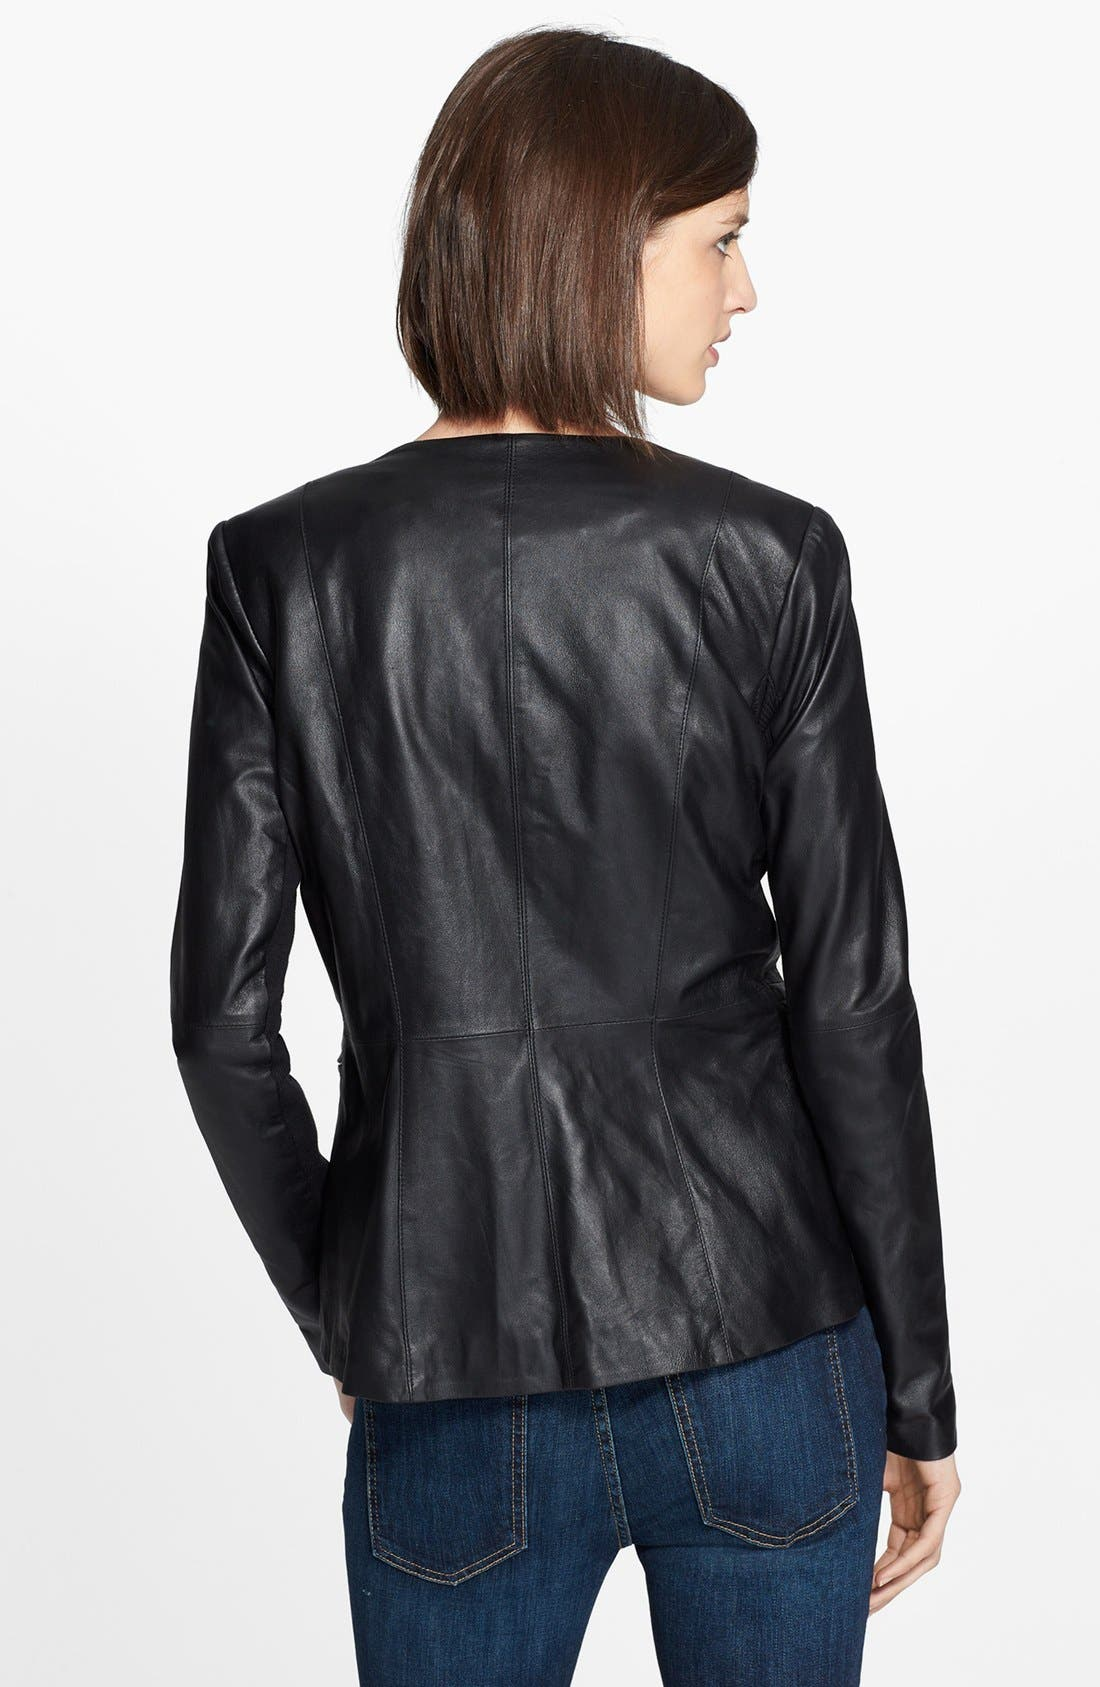 VEDA, 'Aires' Asymmetrical Zip Leather Jacket, Alternate thumbnail 4, color, 001